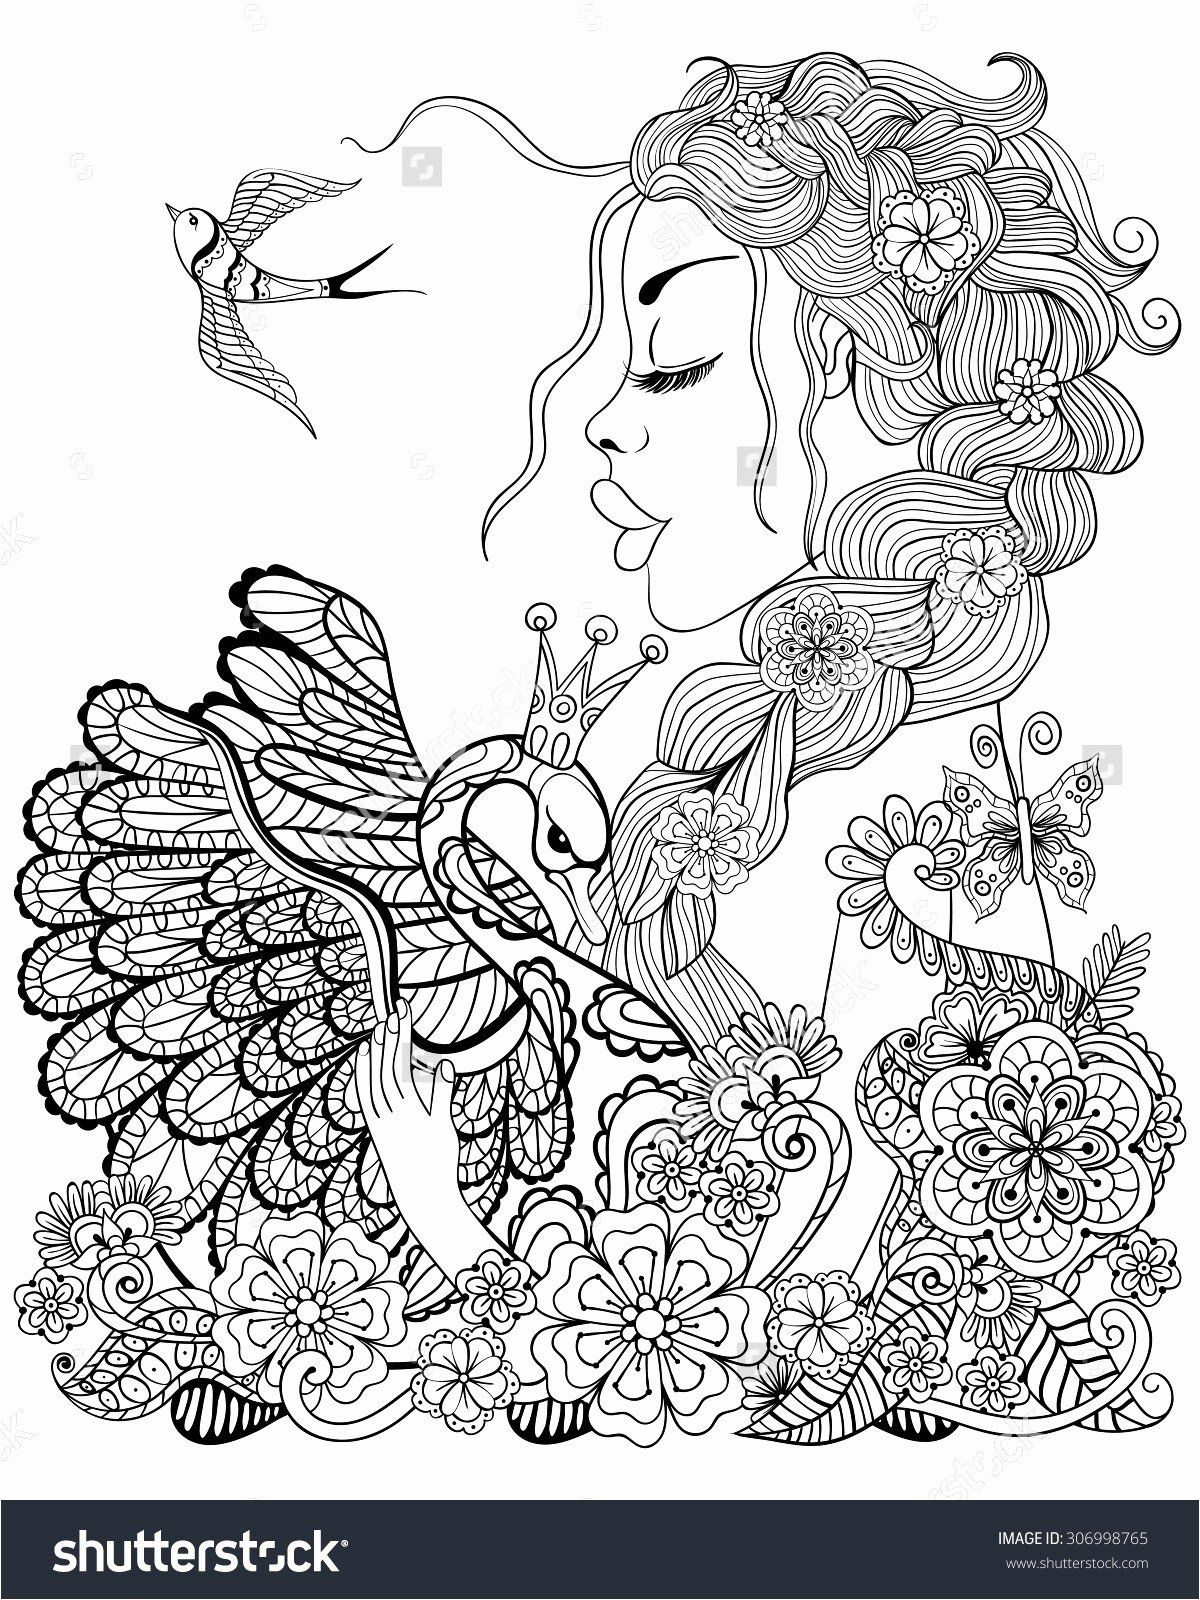 Print Out Coloring Pictures Love Coloring Pages Animal Coloring